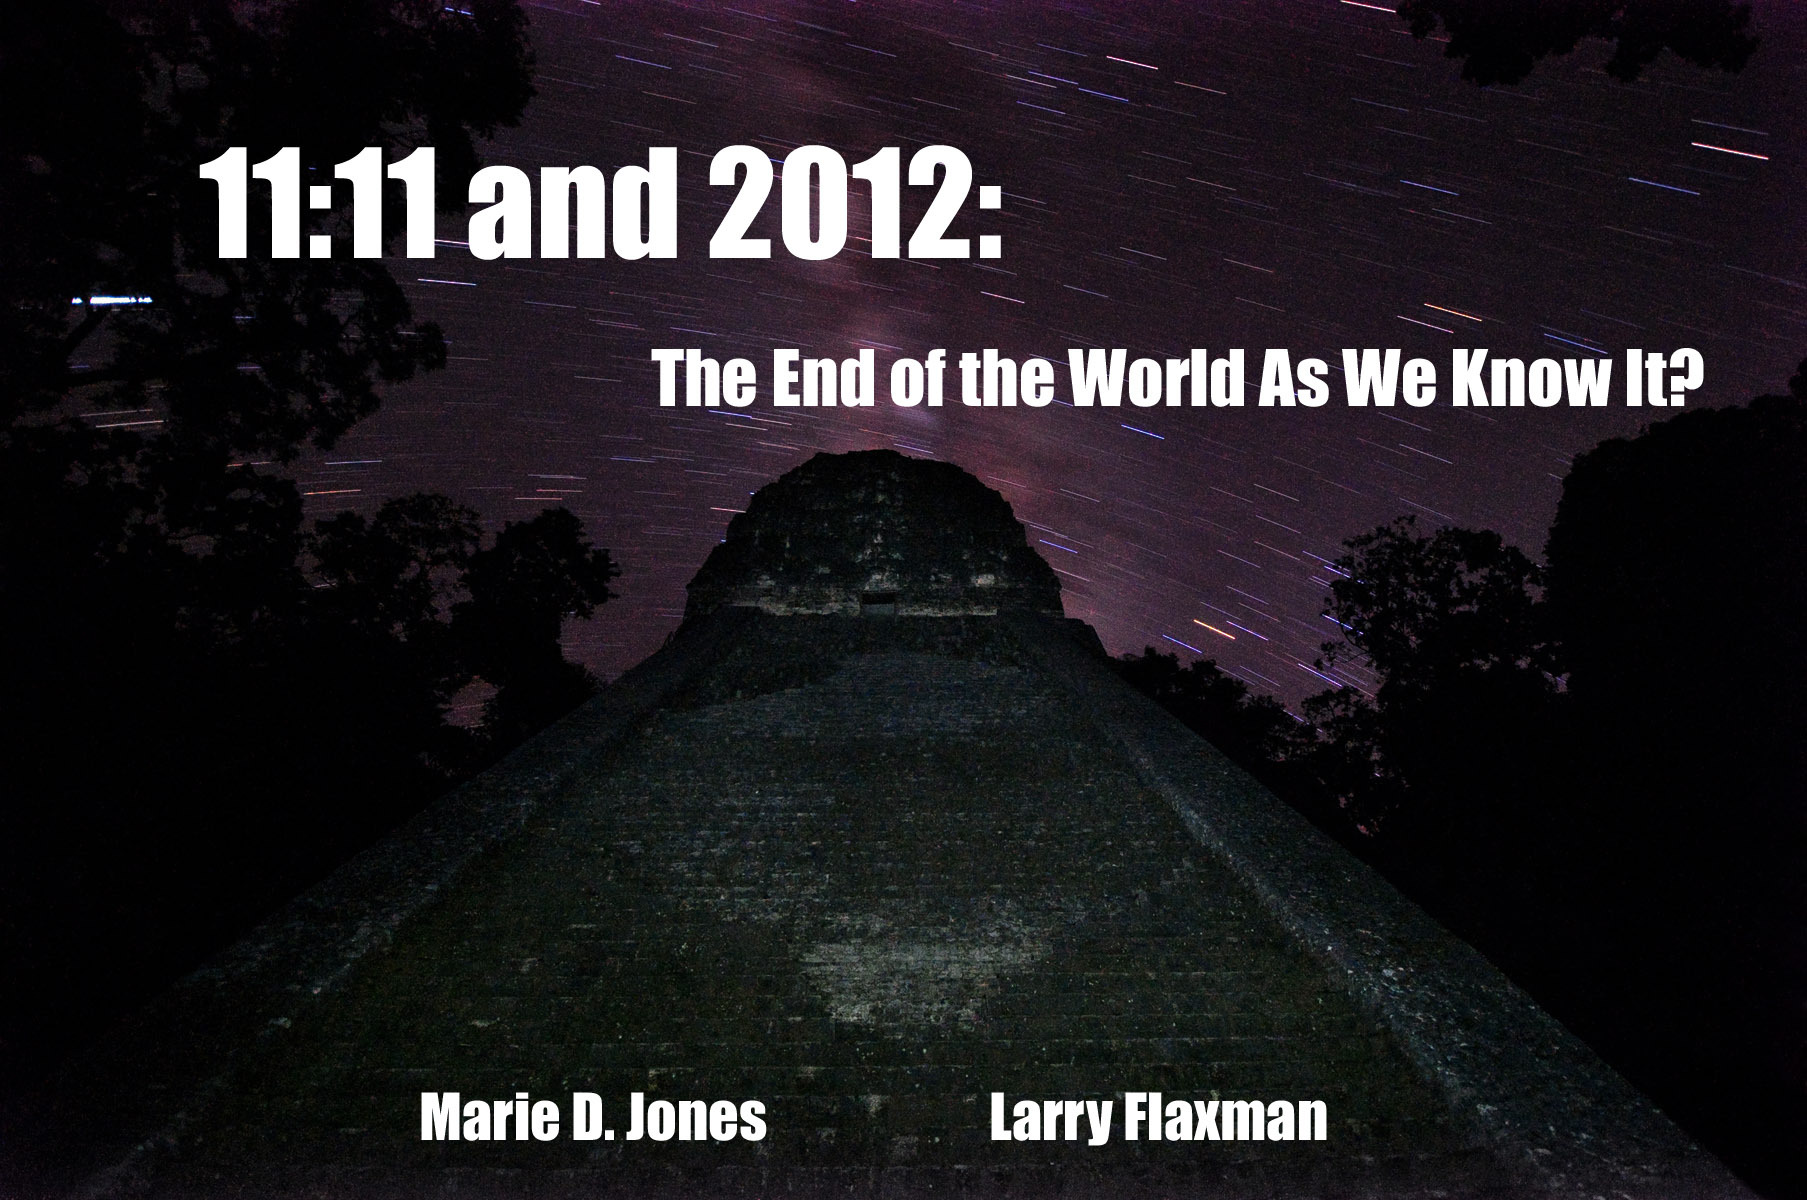 11: 11 and 2012: The End of the World As We Know It?